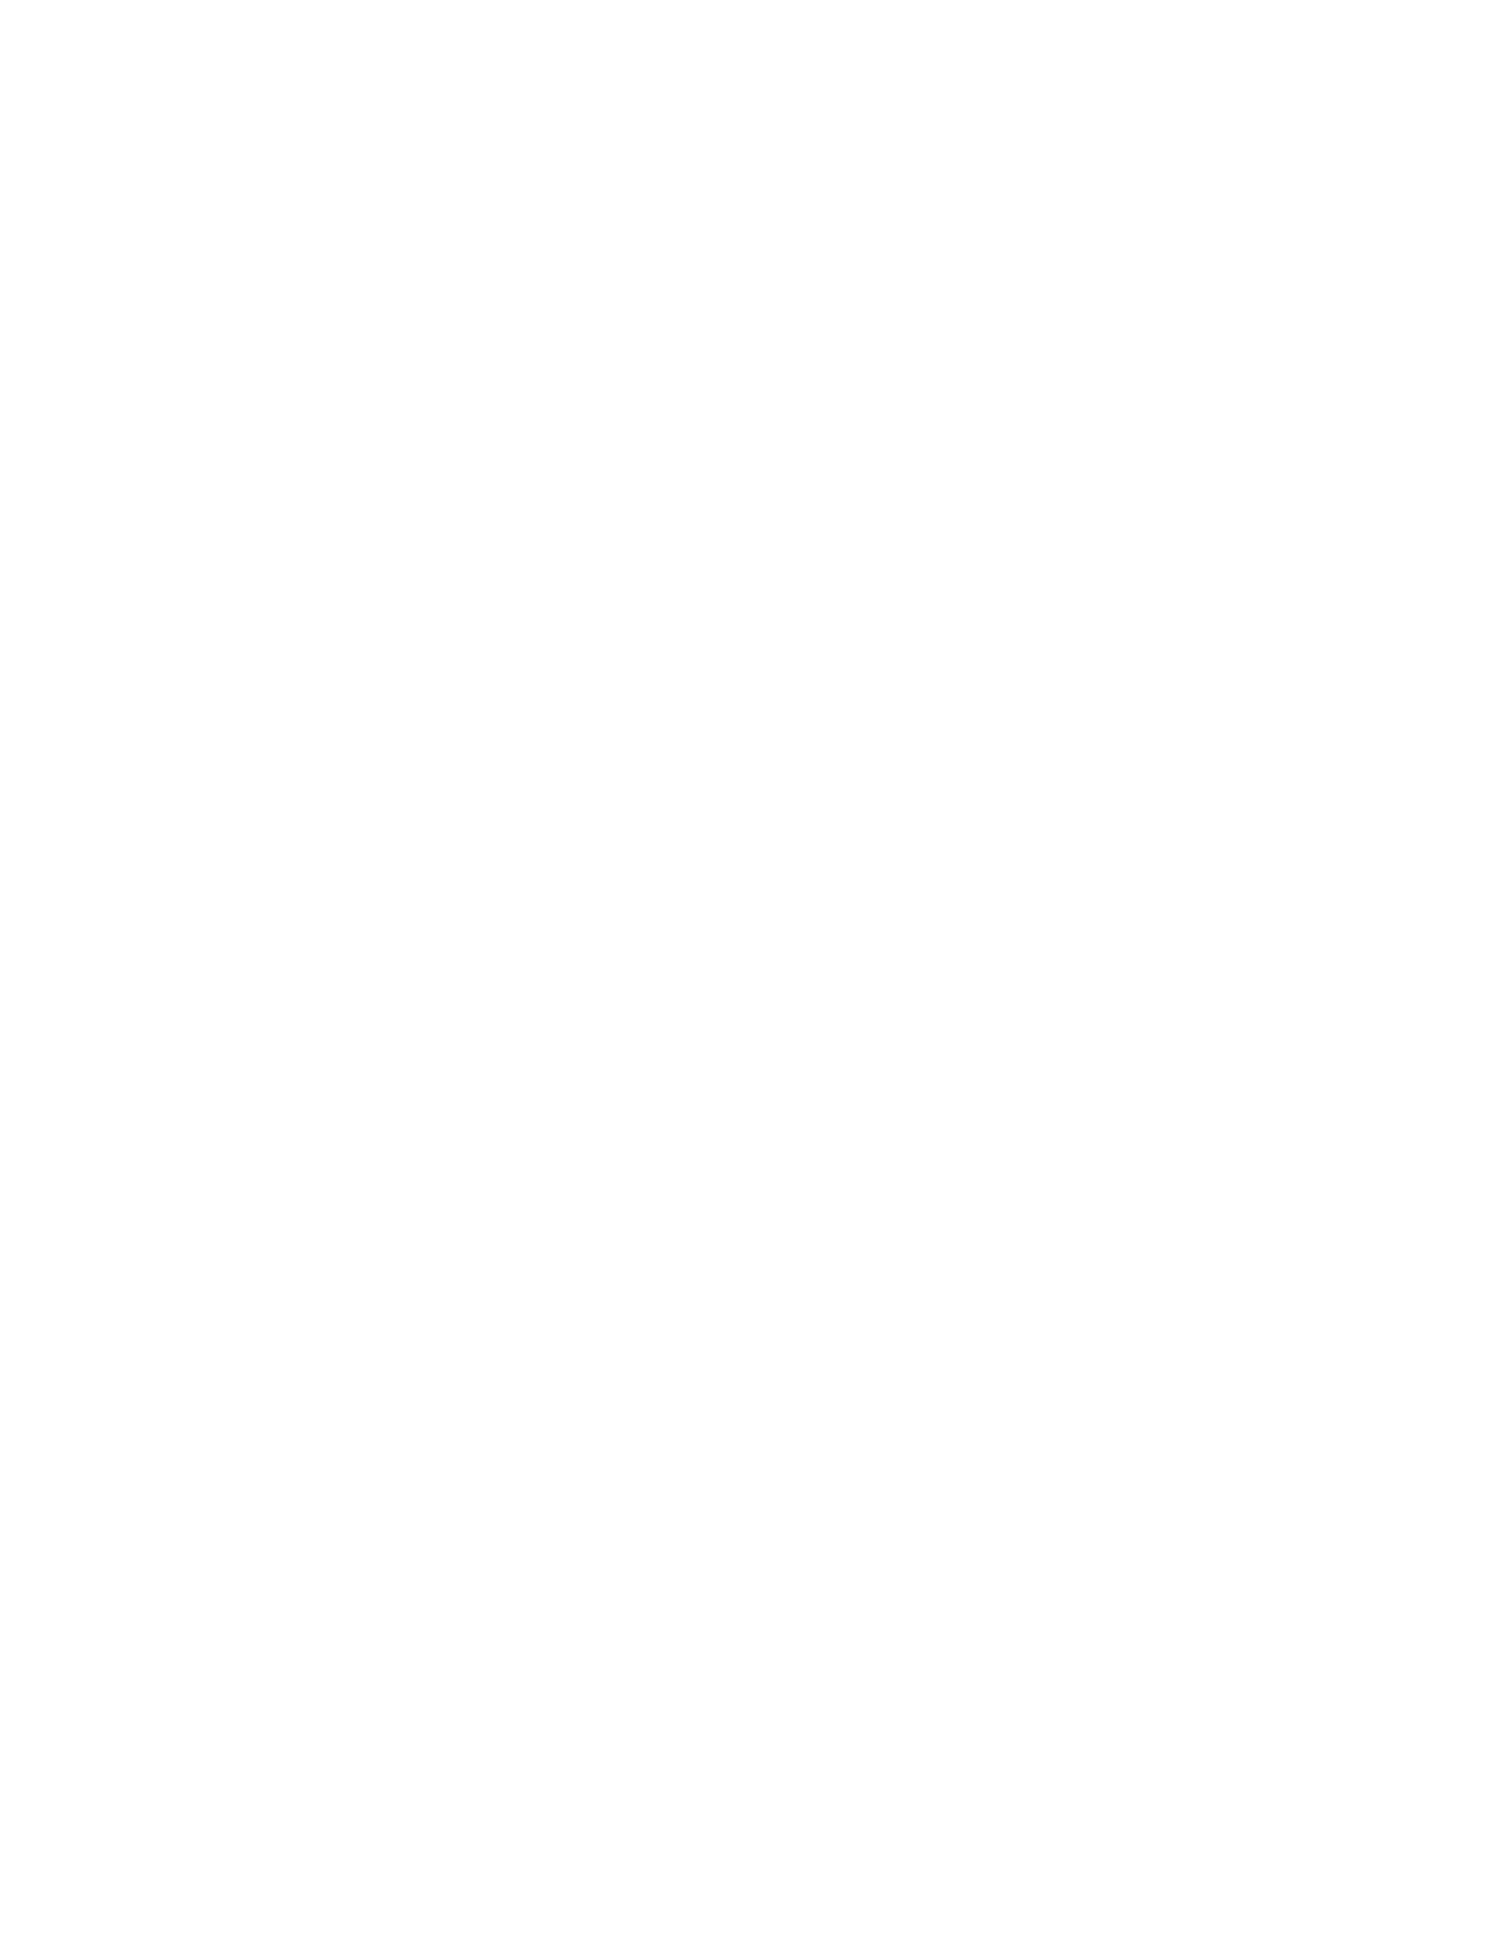 ITP PROMOTIONS